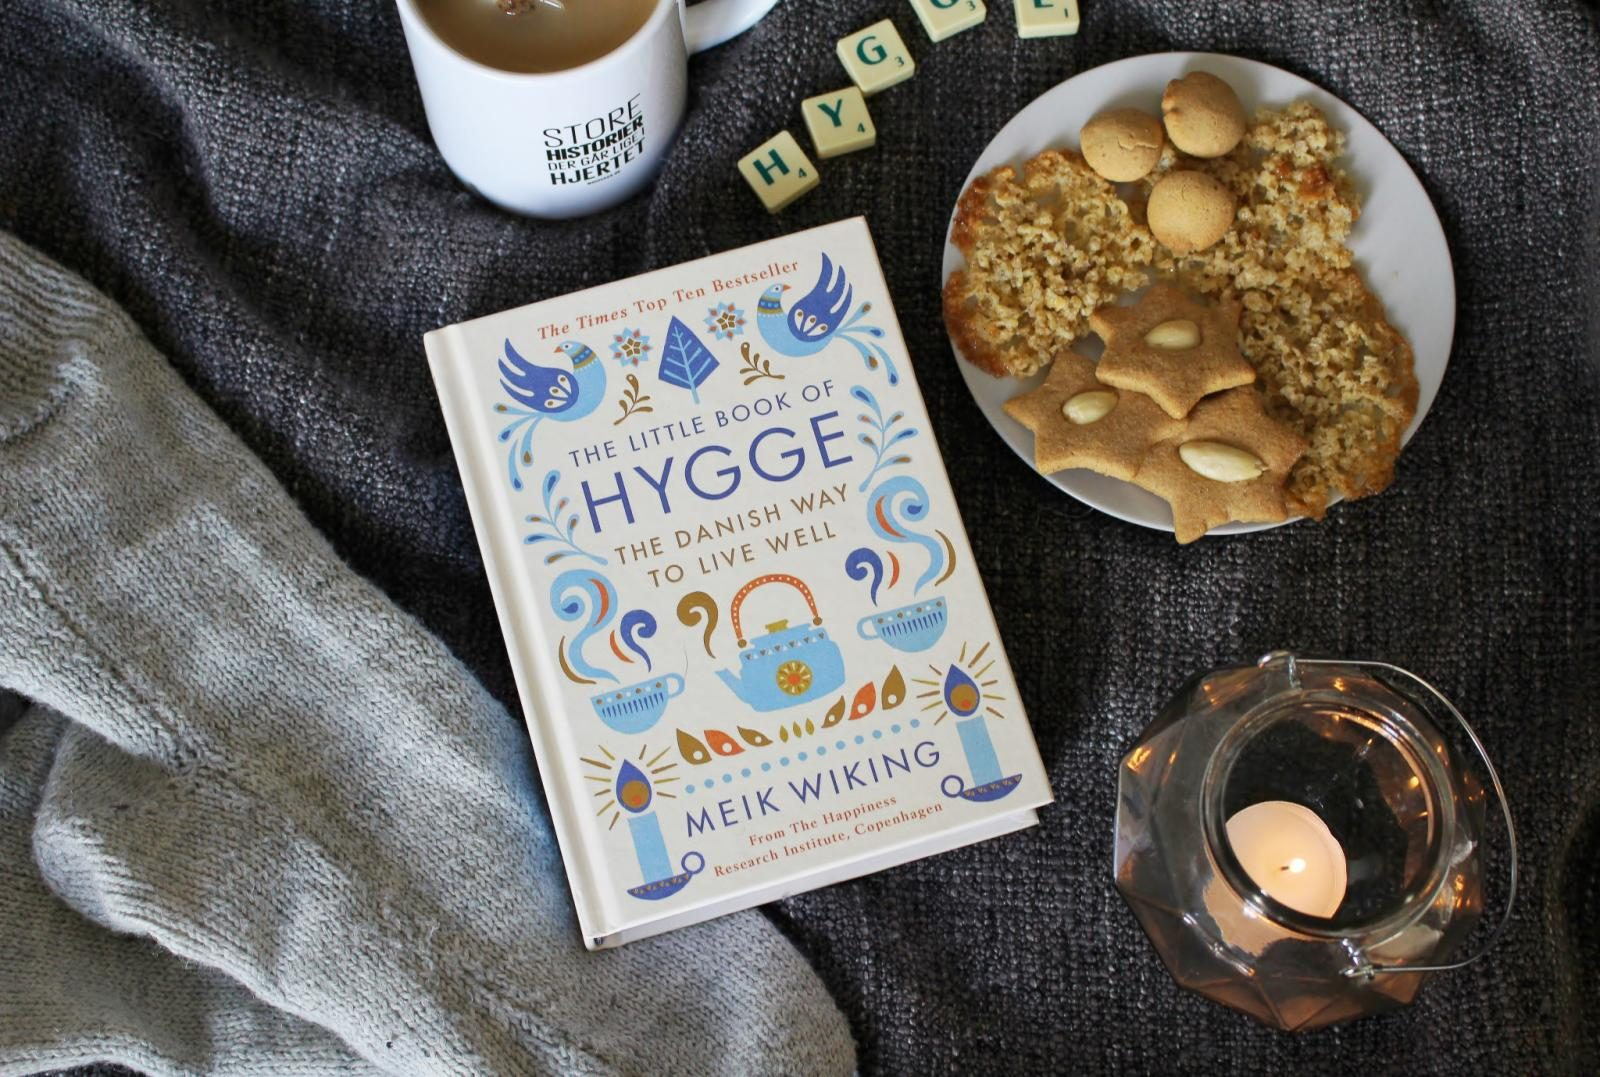 Could hygge reduce the stress of life with a new baby?